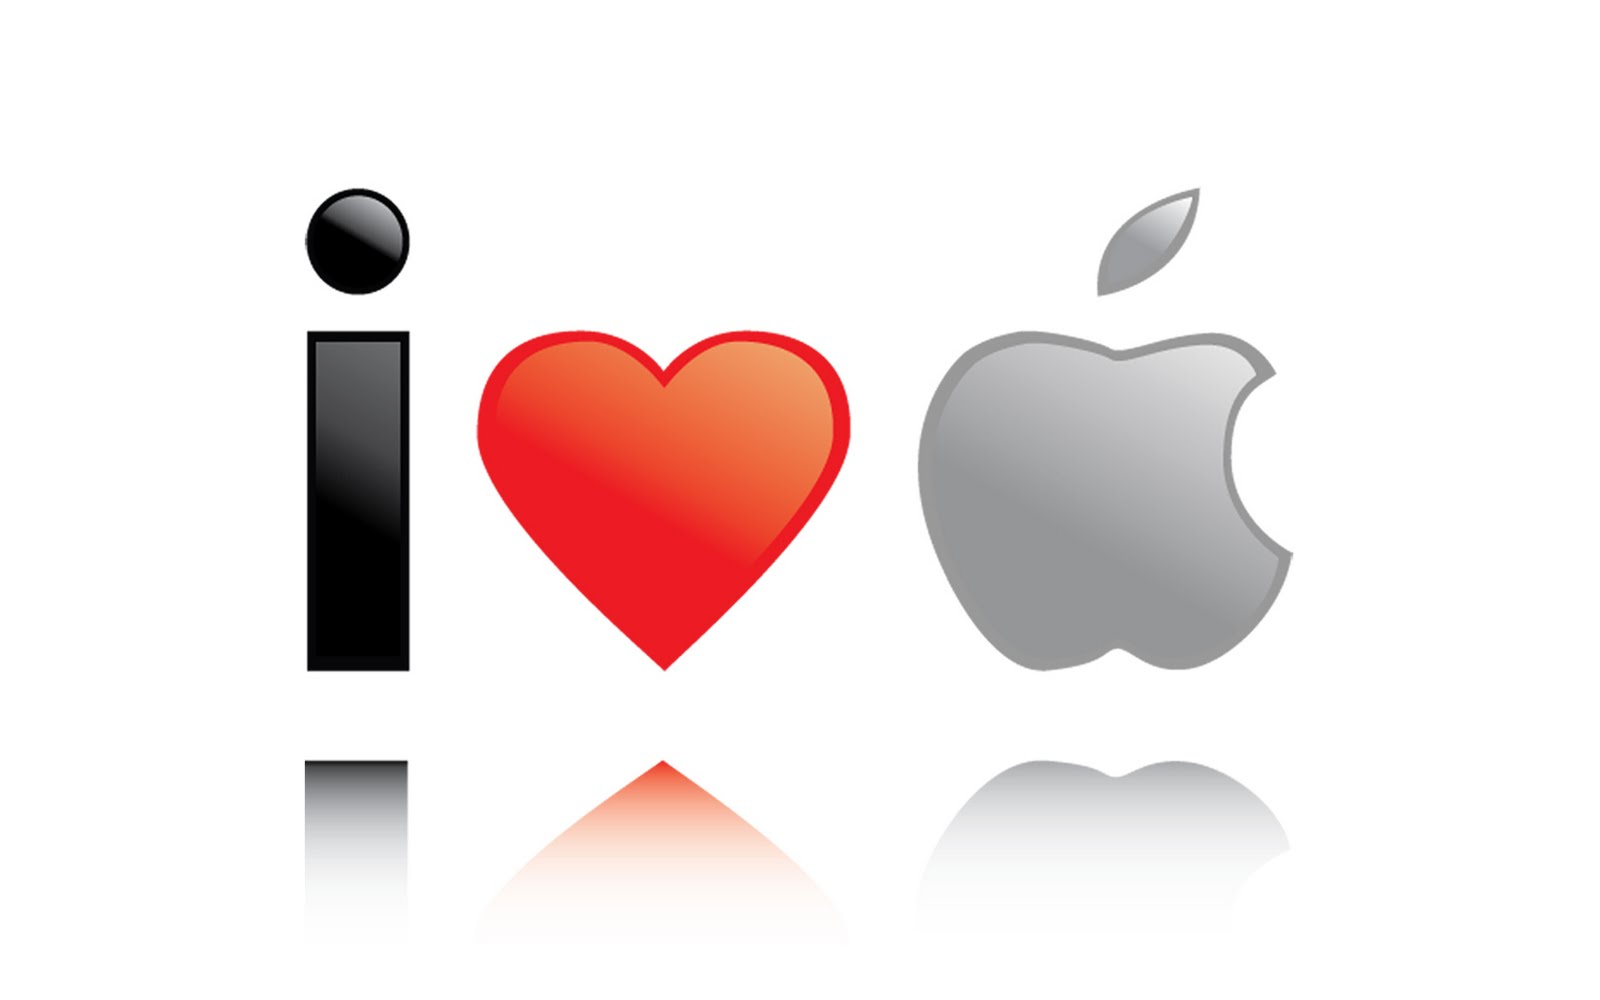 http://3.bp.blogspot.com/-UQTwepVnGcM/T9qrQRCLyxI/AAAAAAAANgY/ARhs33250PI/s1600/Mac+Red+Love+Wallpapers+Red+Apple+Romance57.jpg